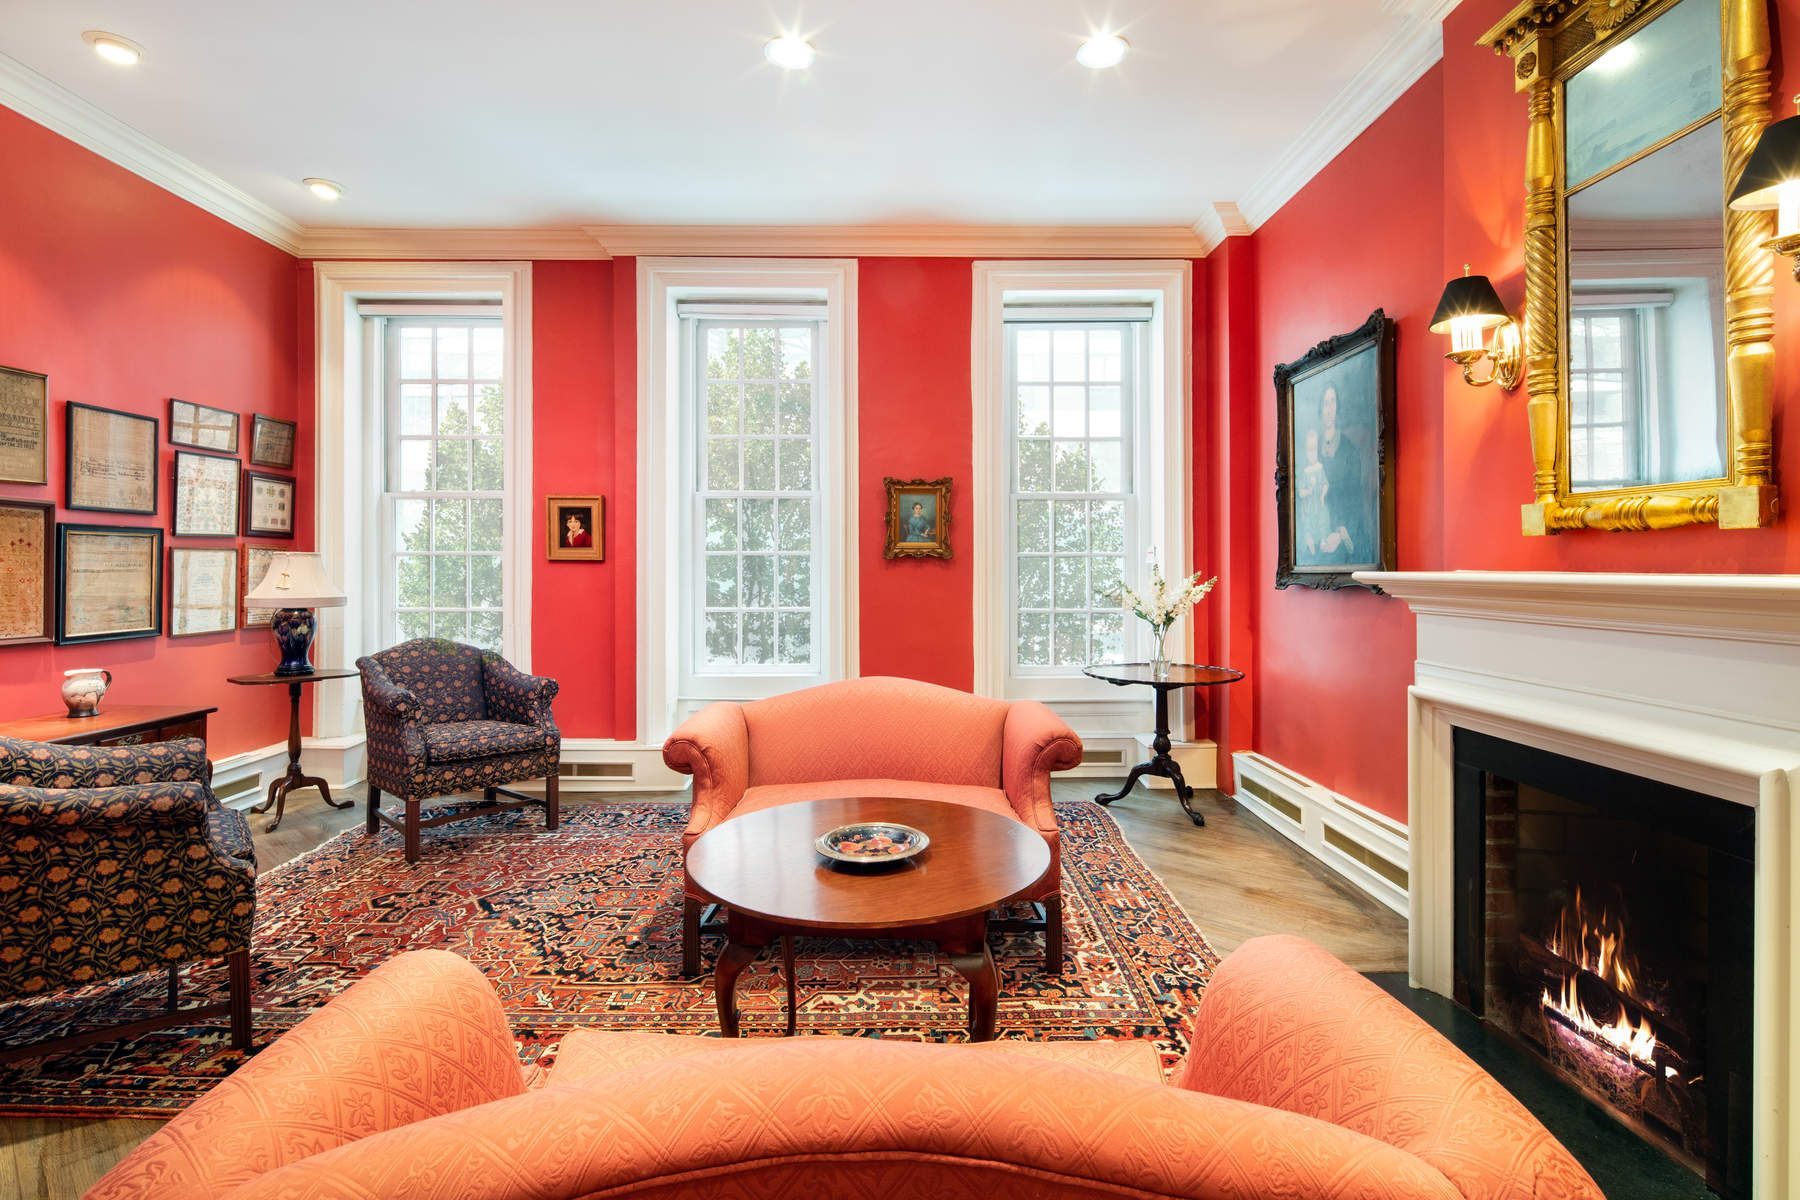 Townhouse for Sale at Sutton Place Jewel 442 East 58th Street New York, New York 10022 United States